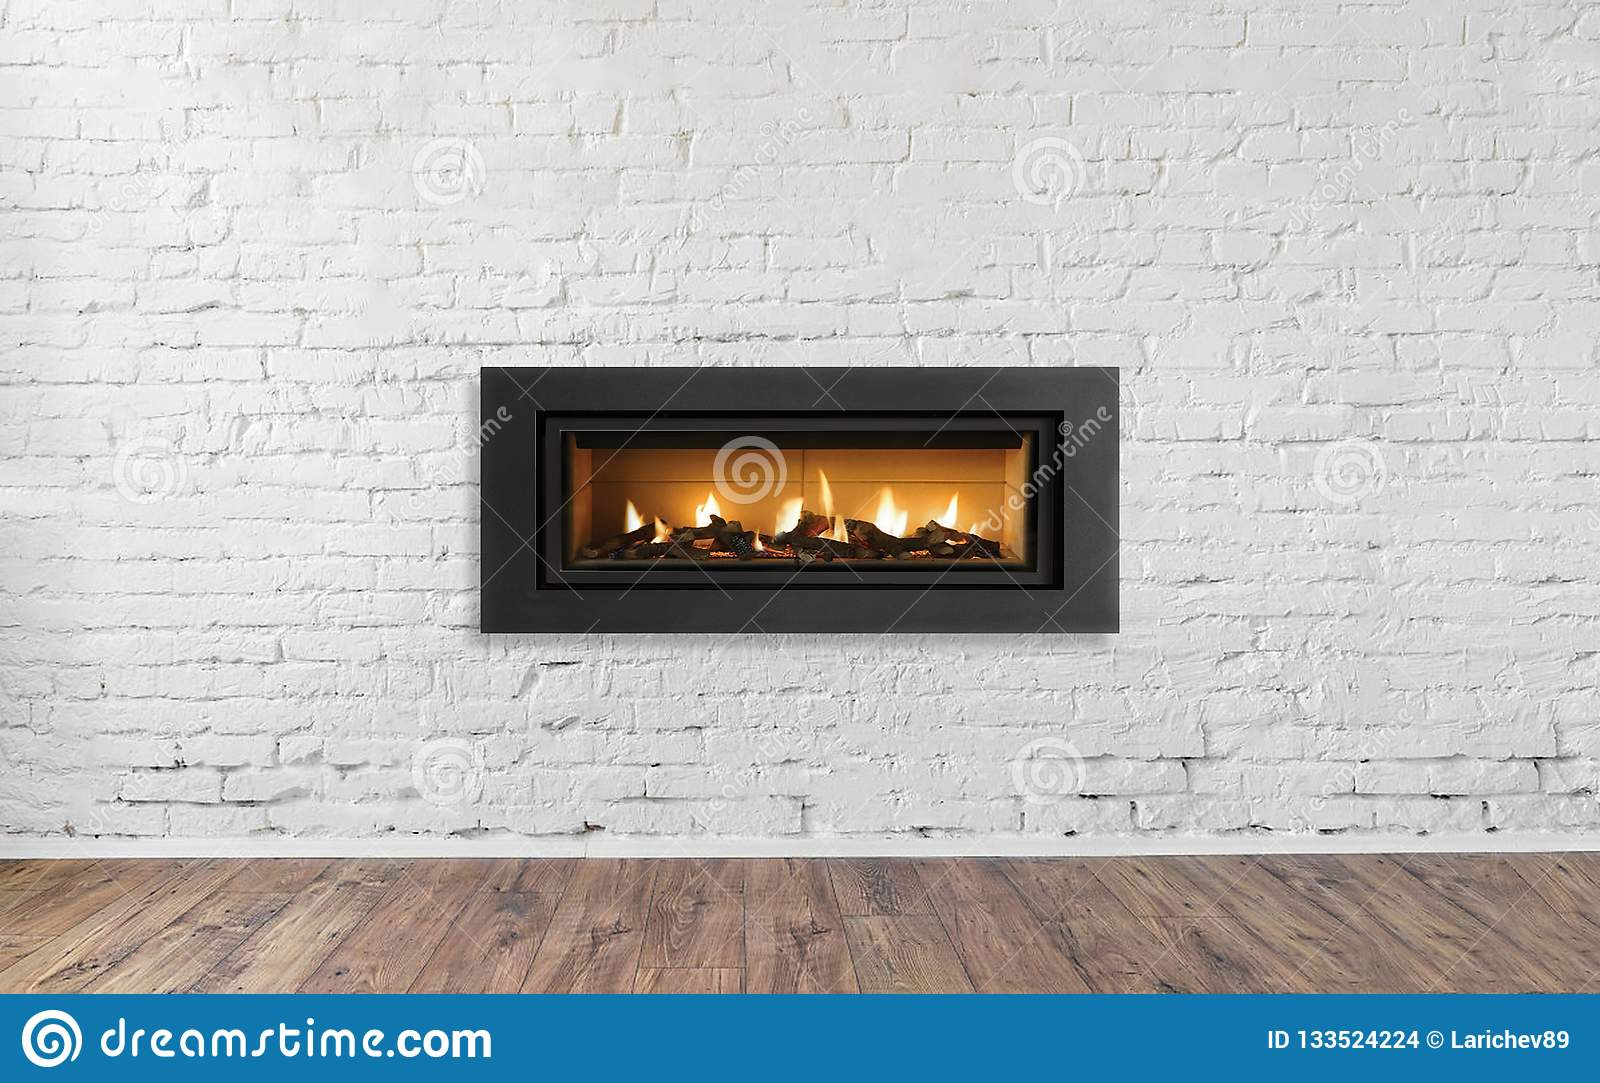 Gas Fireplace On White Brick Wall In Bright Empty Living Room Interior Of House Stock Photo Image Of Beautiful Concrete 133524224